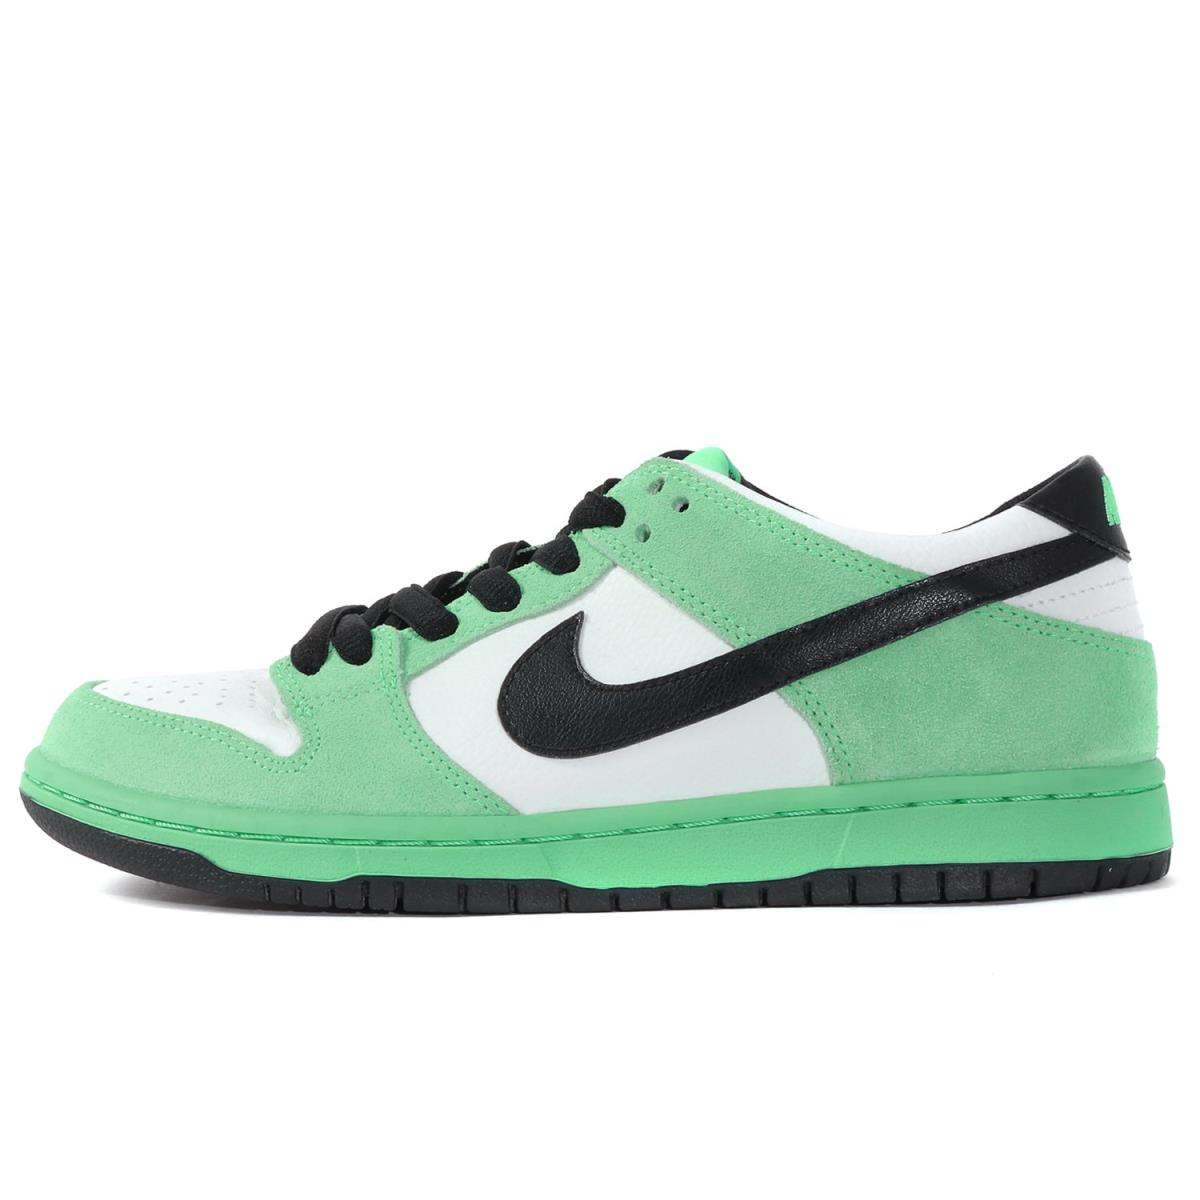 b0cd31cea135 BEEGLE by Boo-Bee  NIKE (Nike) SB DUNK Low PRO IW Sea Crystal ...